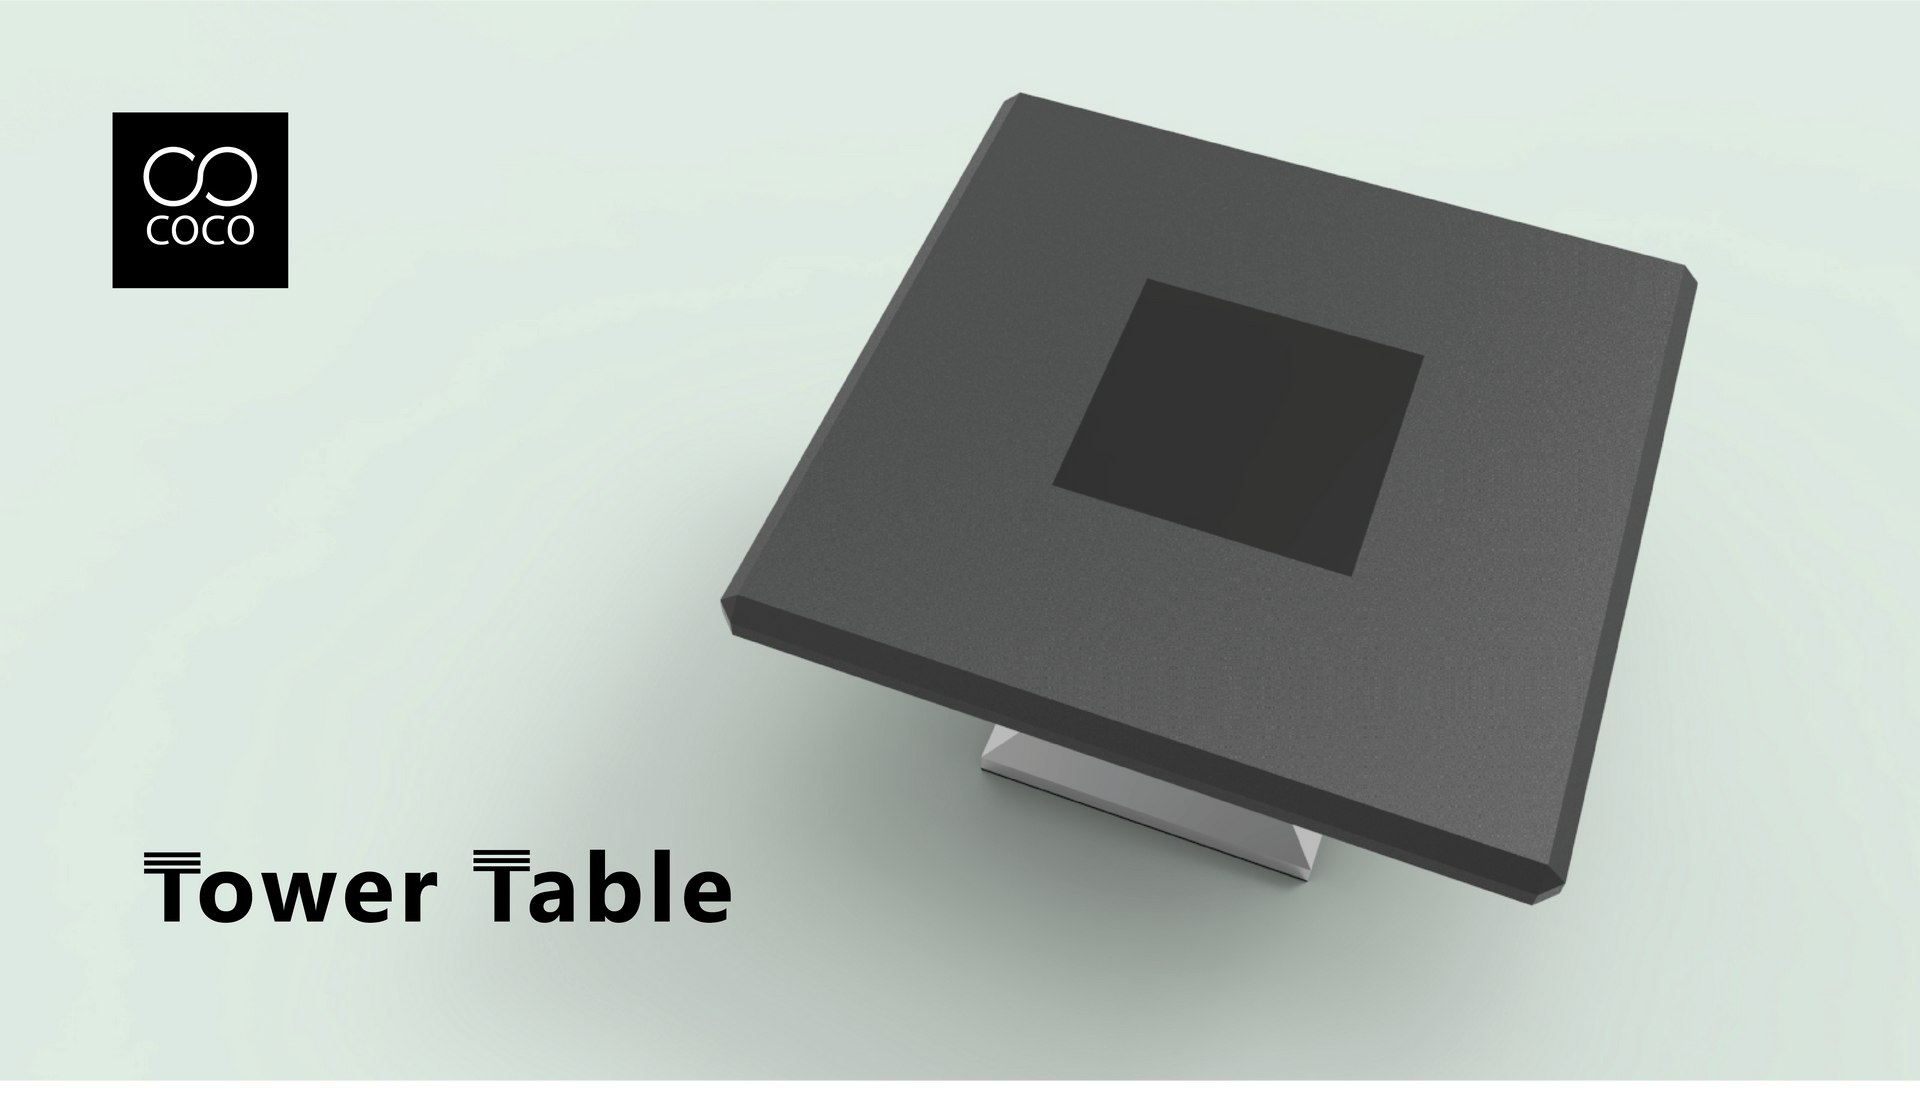 Tower Table slide 1.2.png